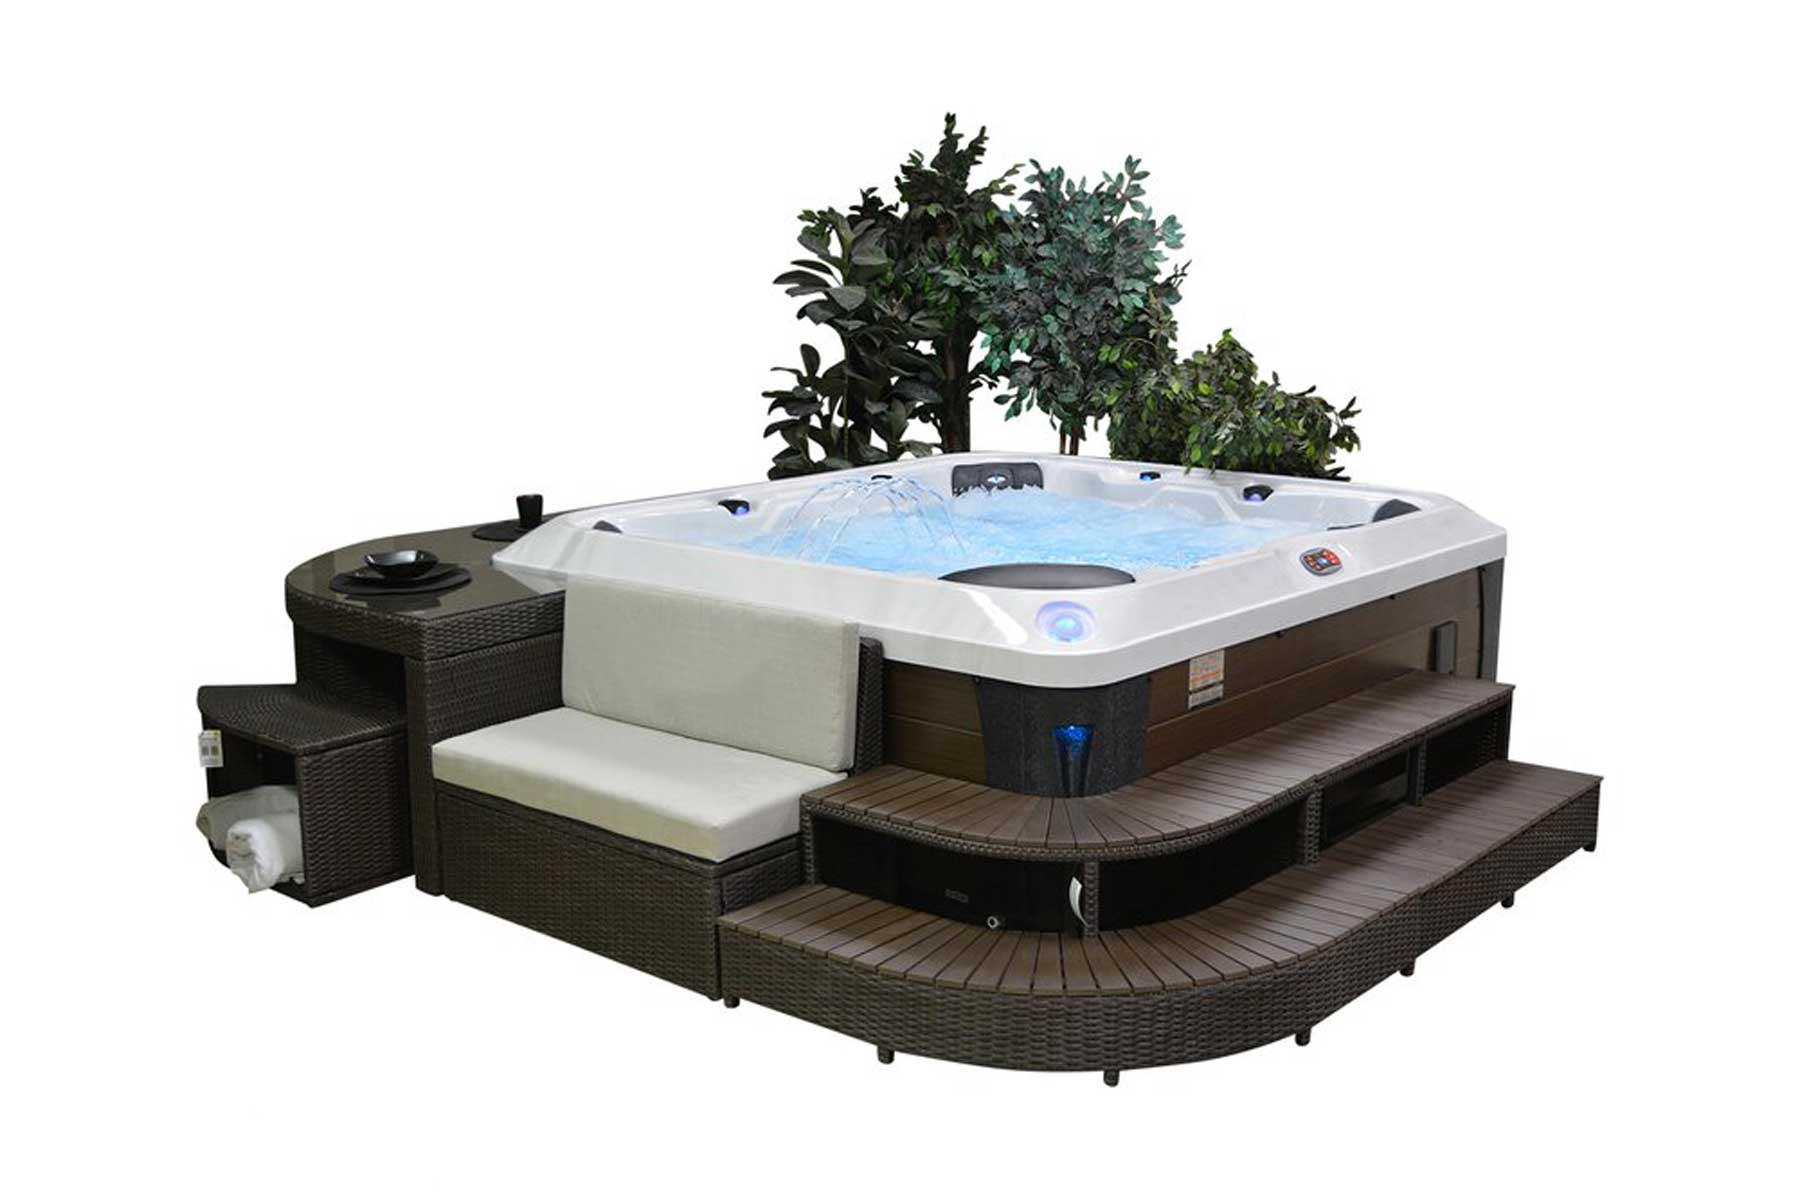 The Best Hot Tubs For Your Deck Patio Or Backyard Travel Leisure Travel Leisure